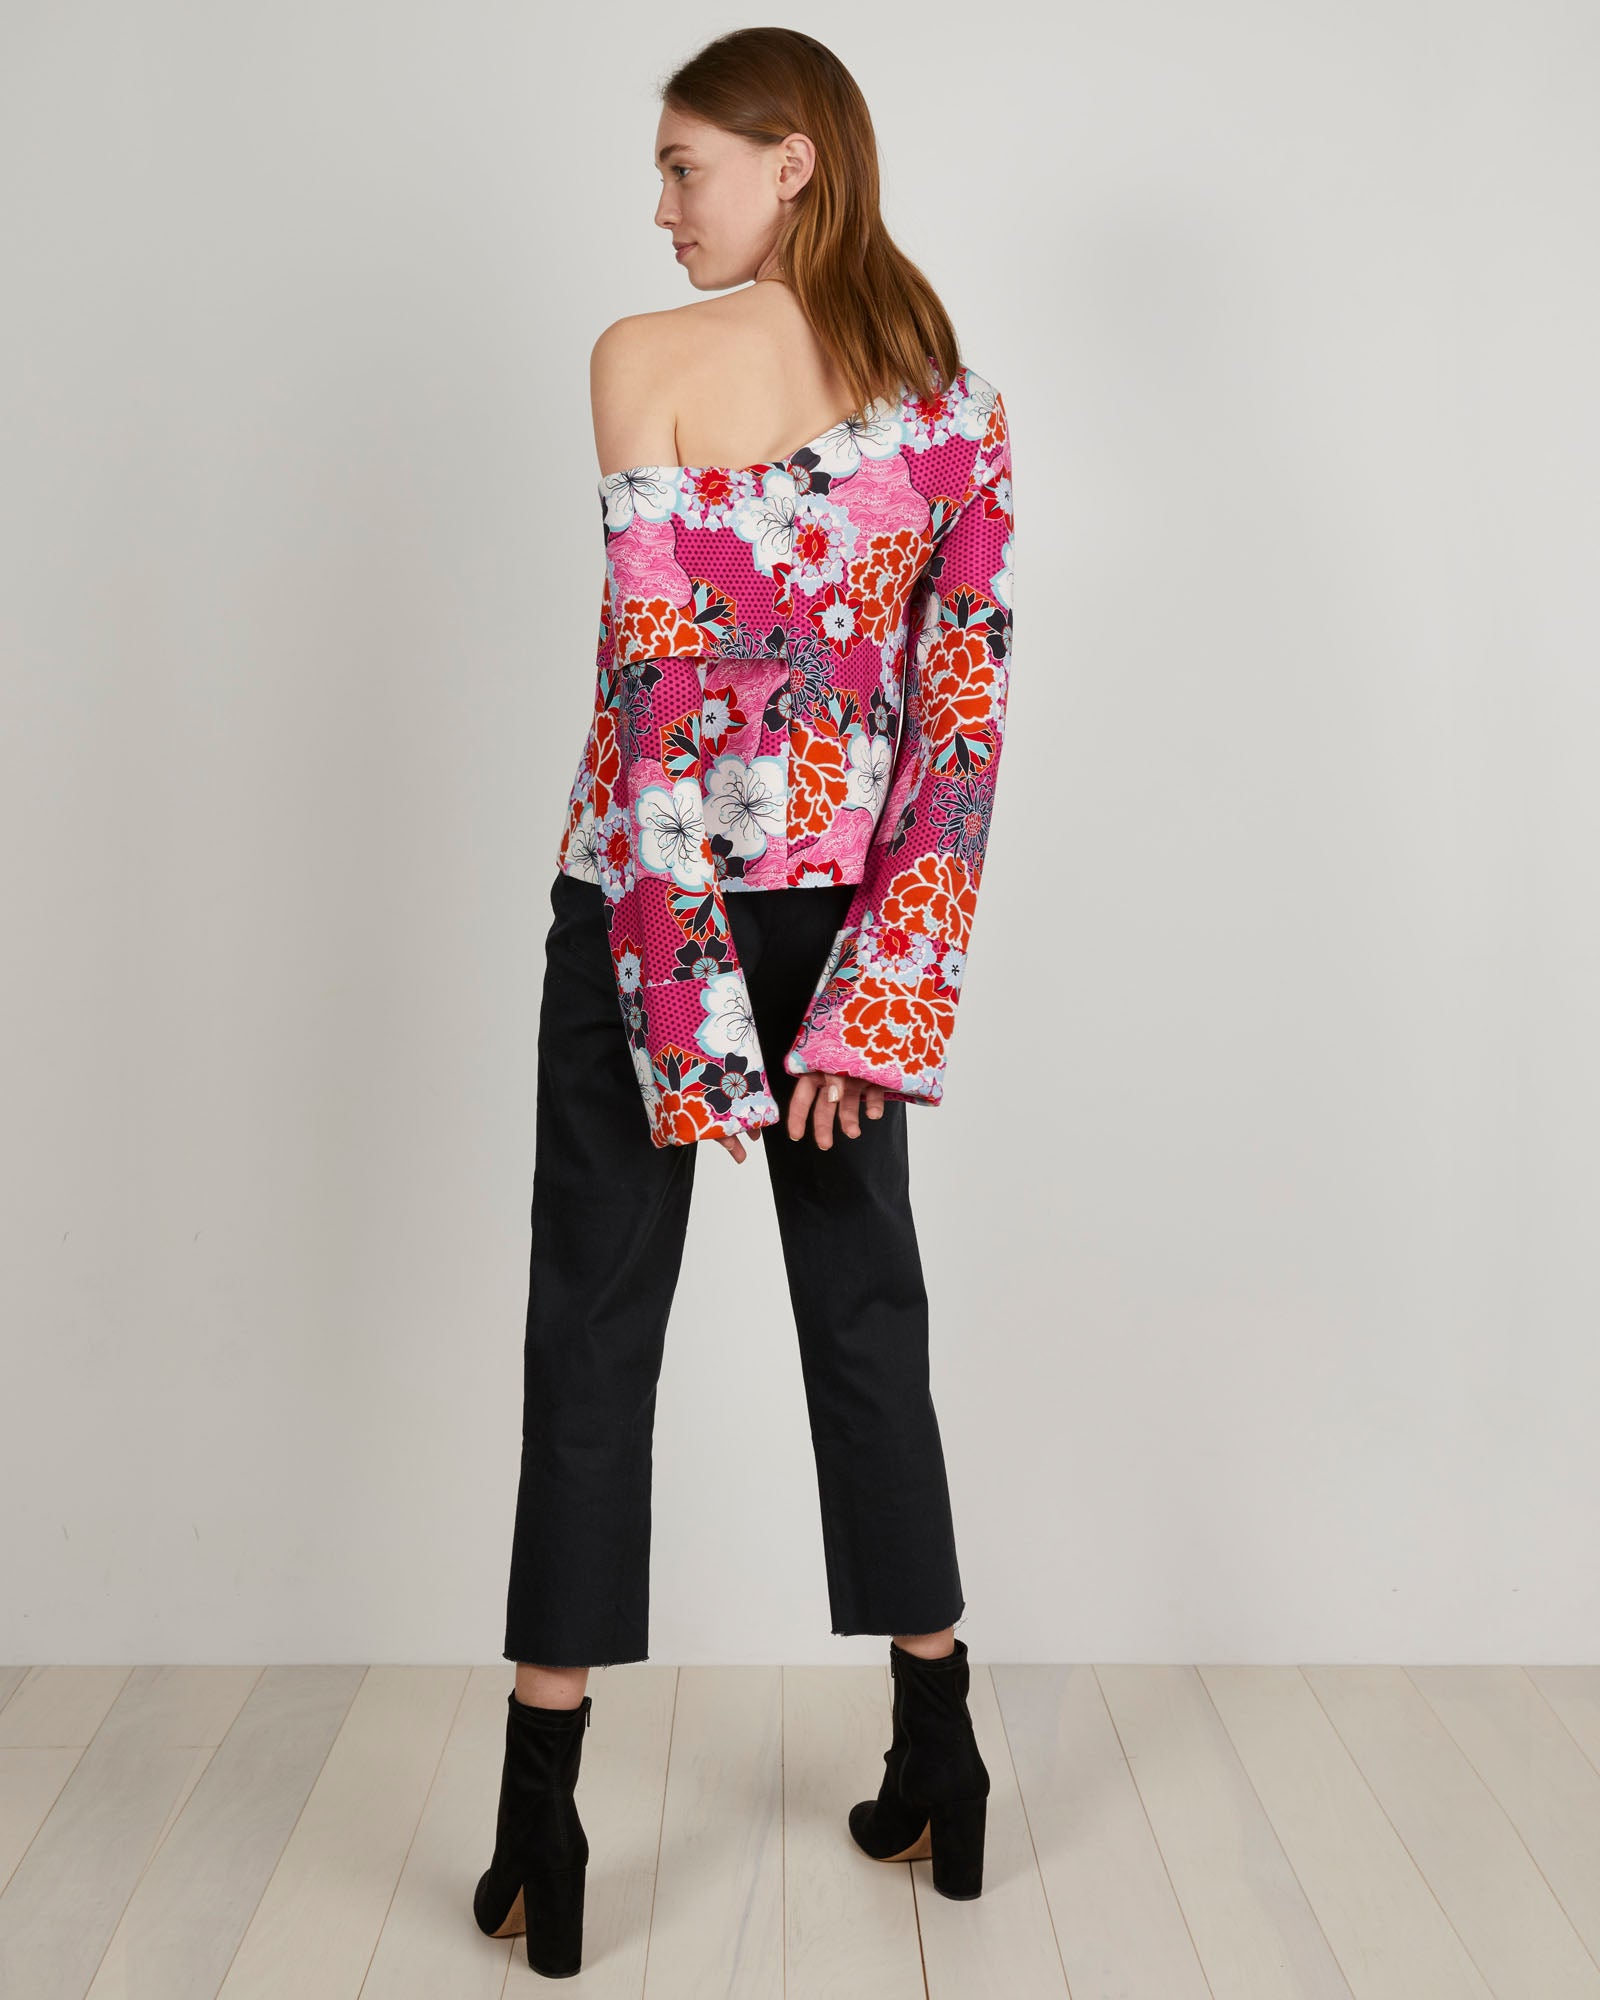 Logan Sweatshirt | Pink Pop Floral